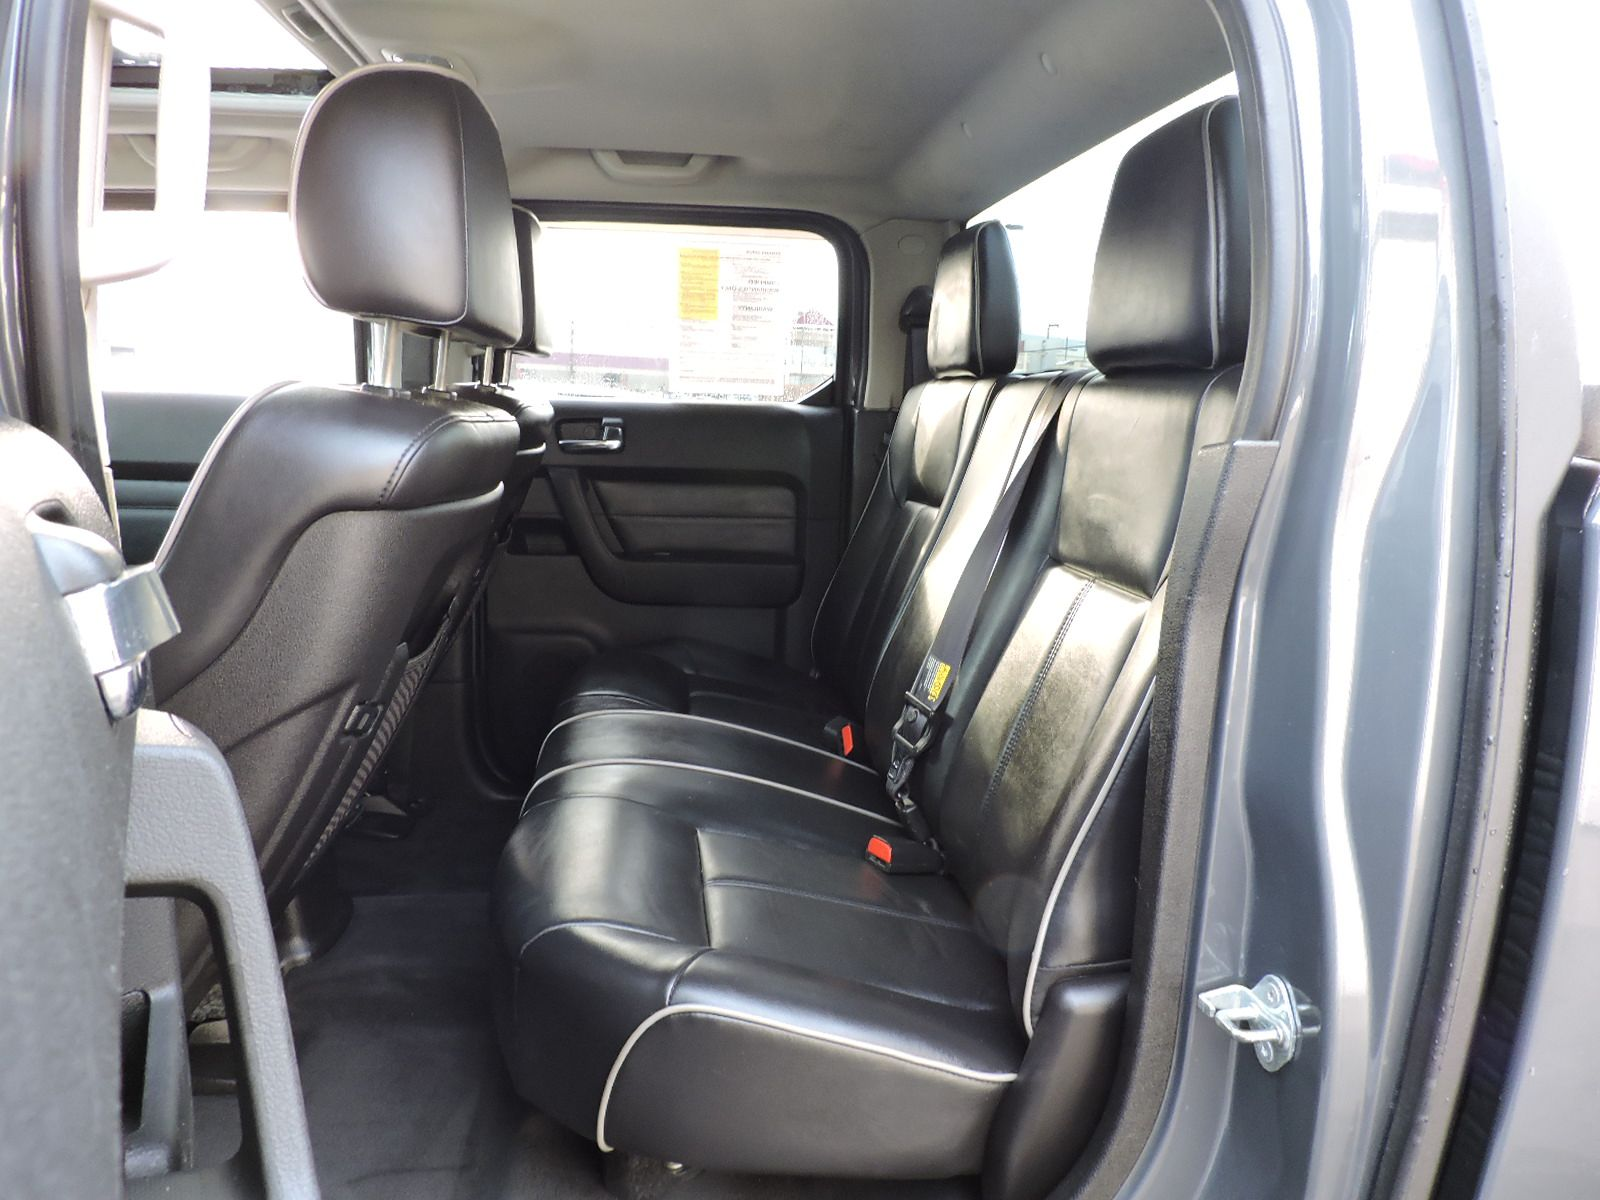 2009 HUMMER H3 H3T Luxury 4WD